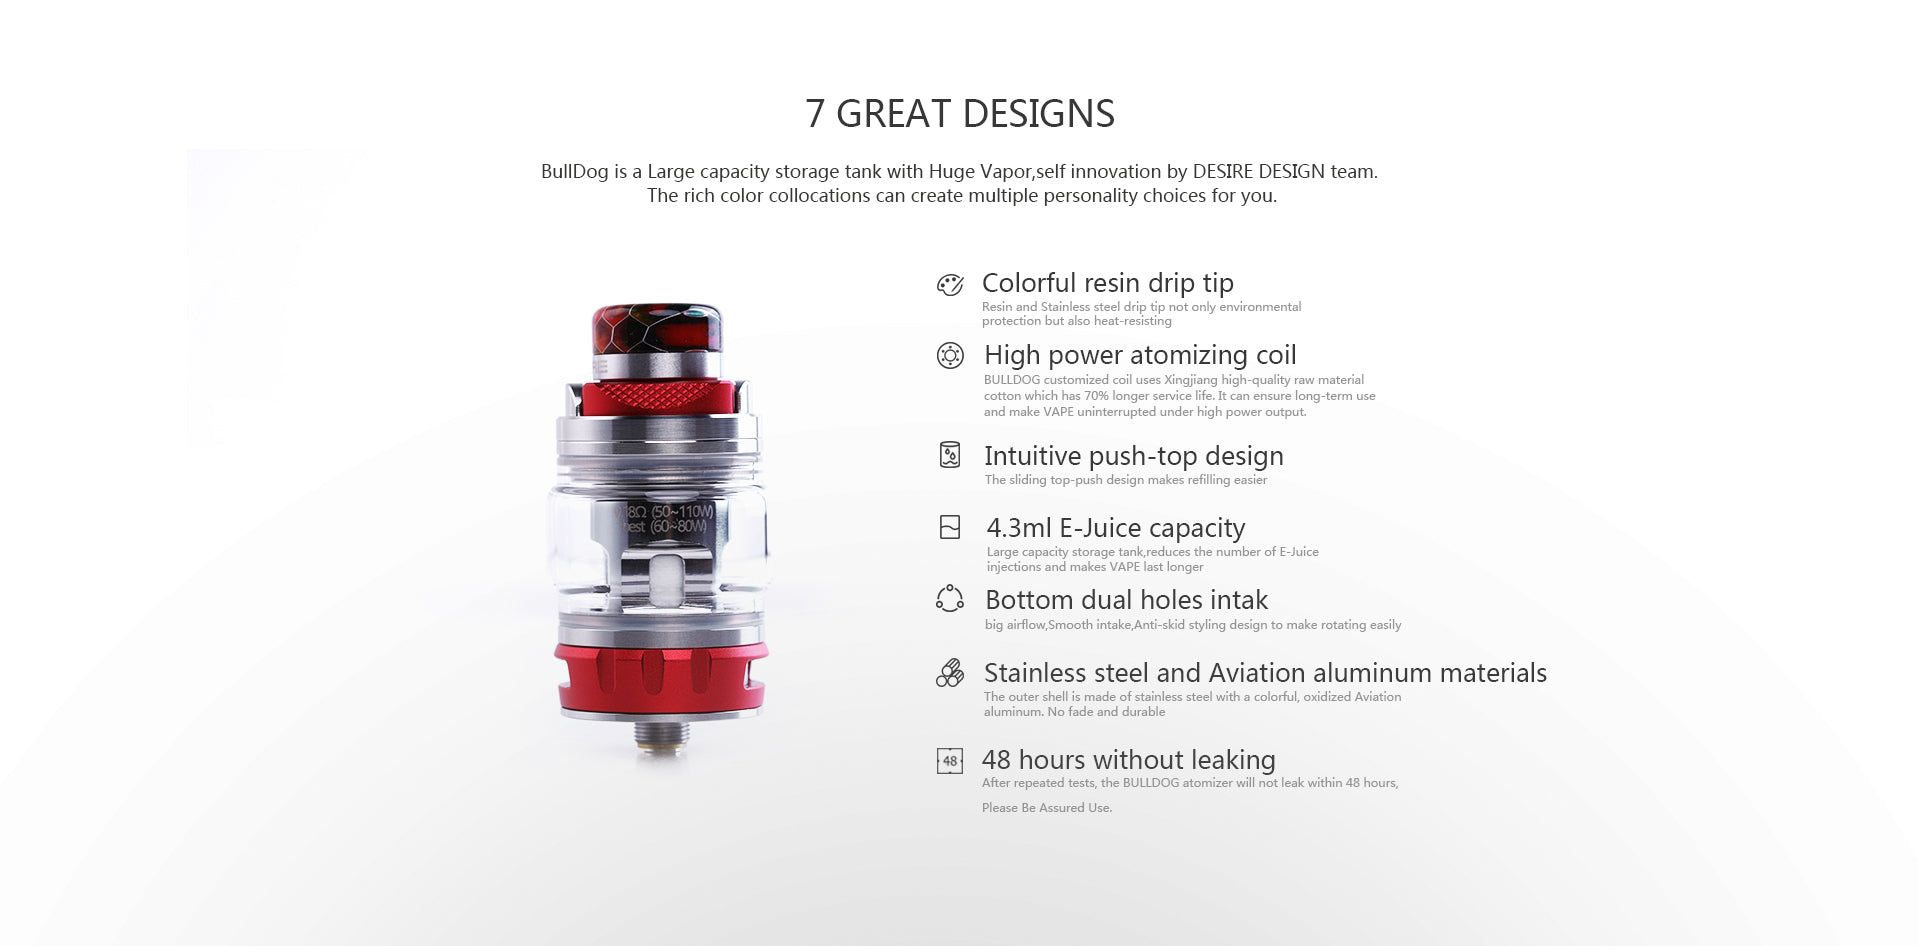 7 great designsBullDog is a Large capacity storage tank with Huge Vapor,self innovation by DESIRE DESIGN team. The rich color collocations can create multiple personality choices for you.